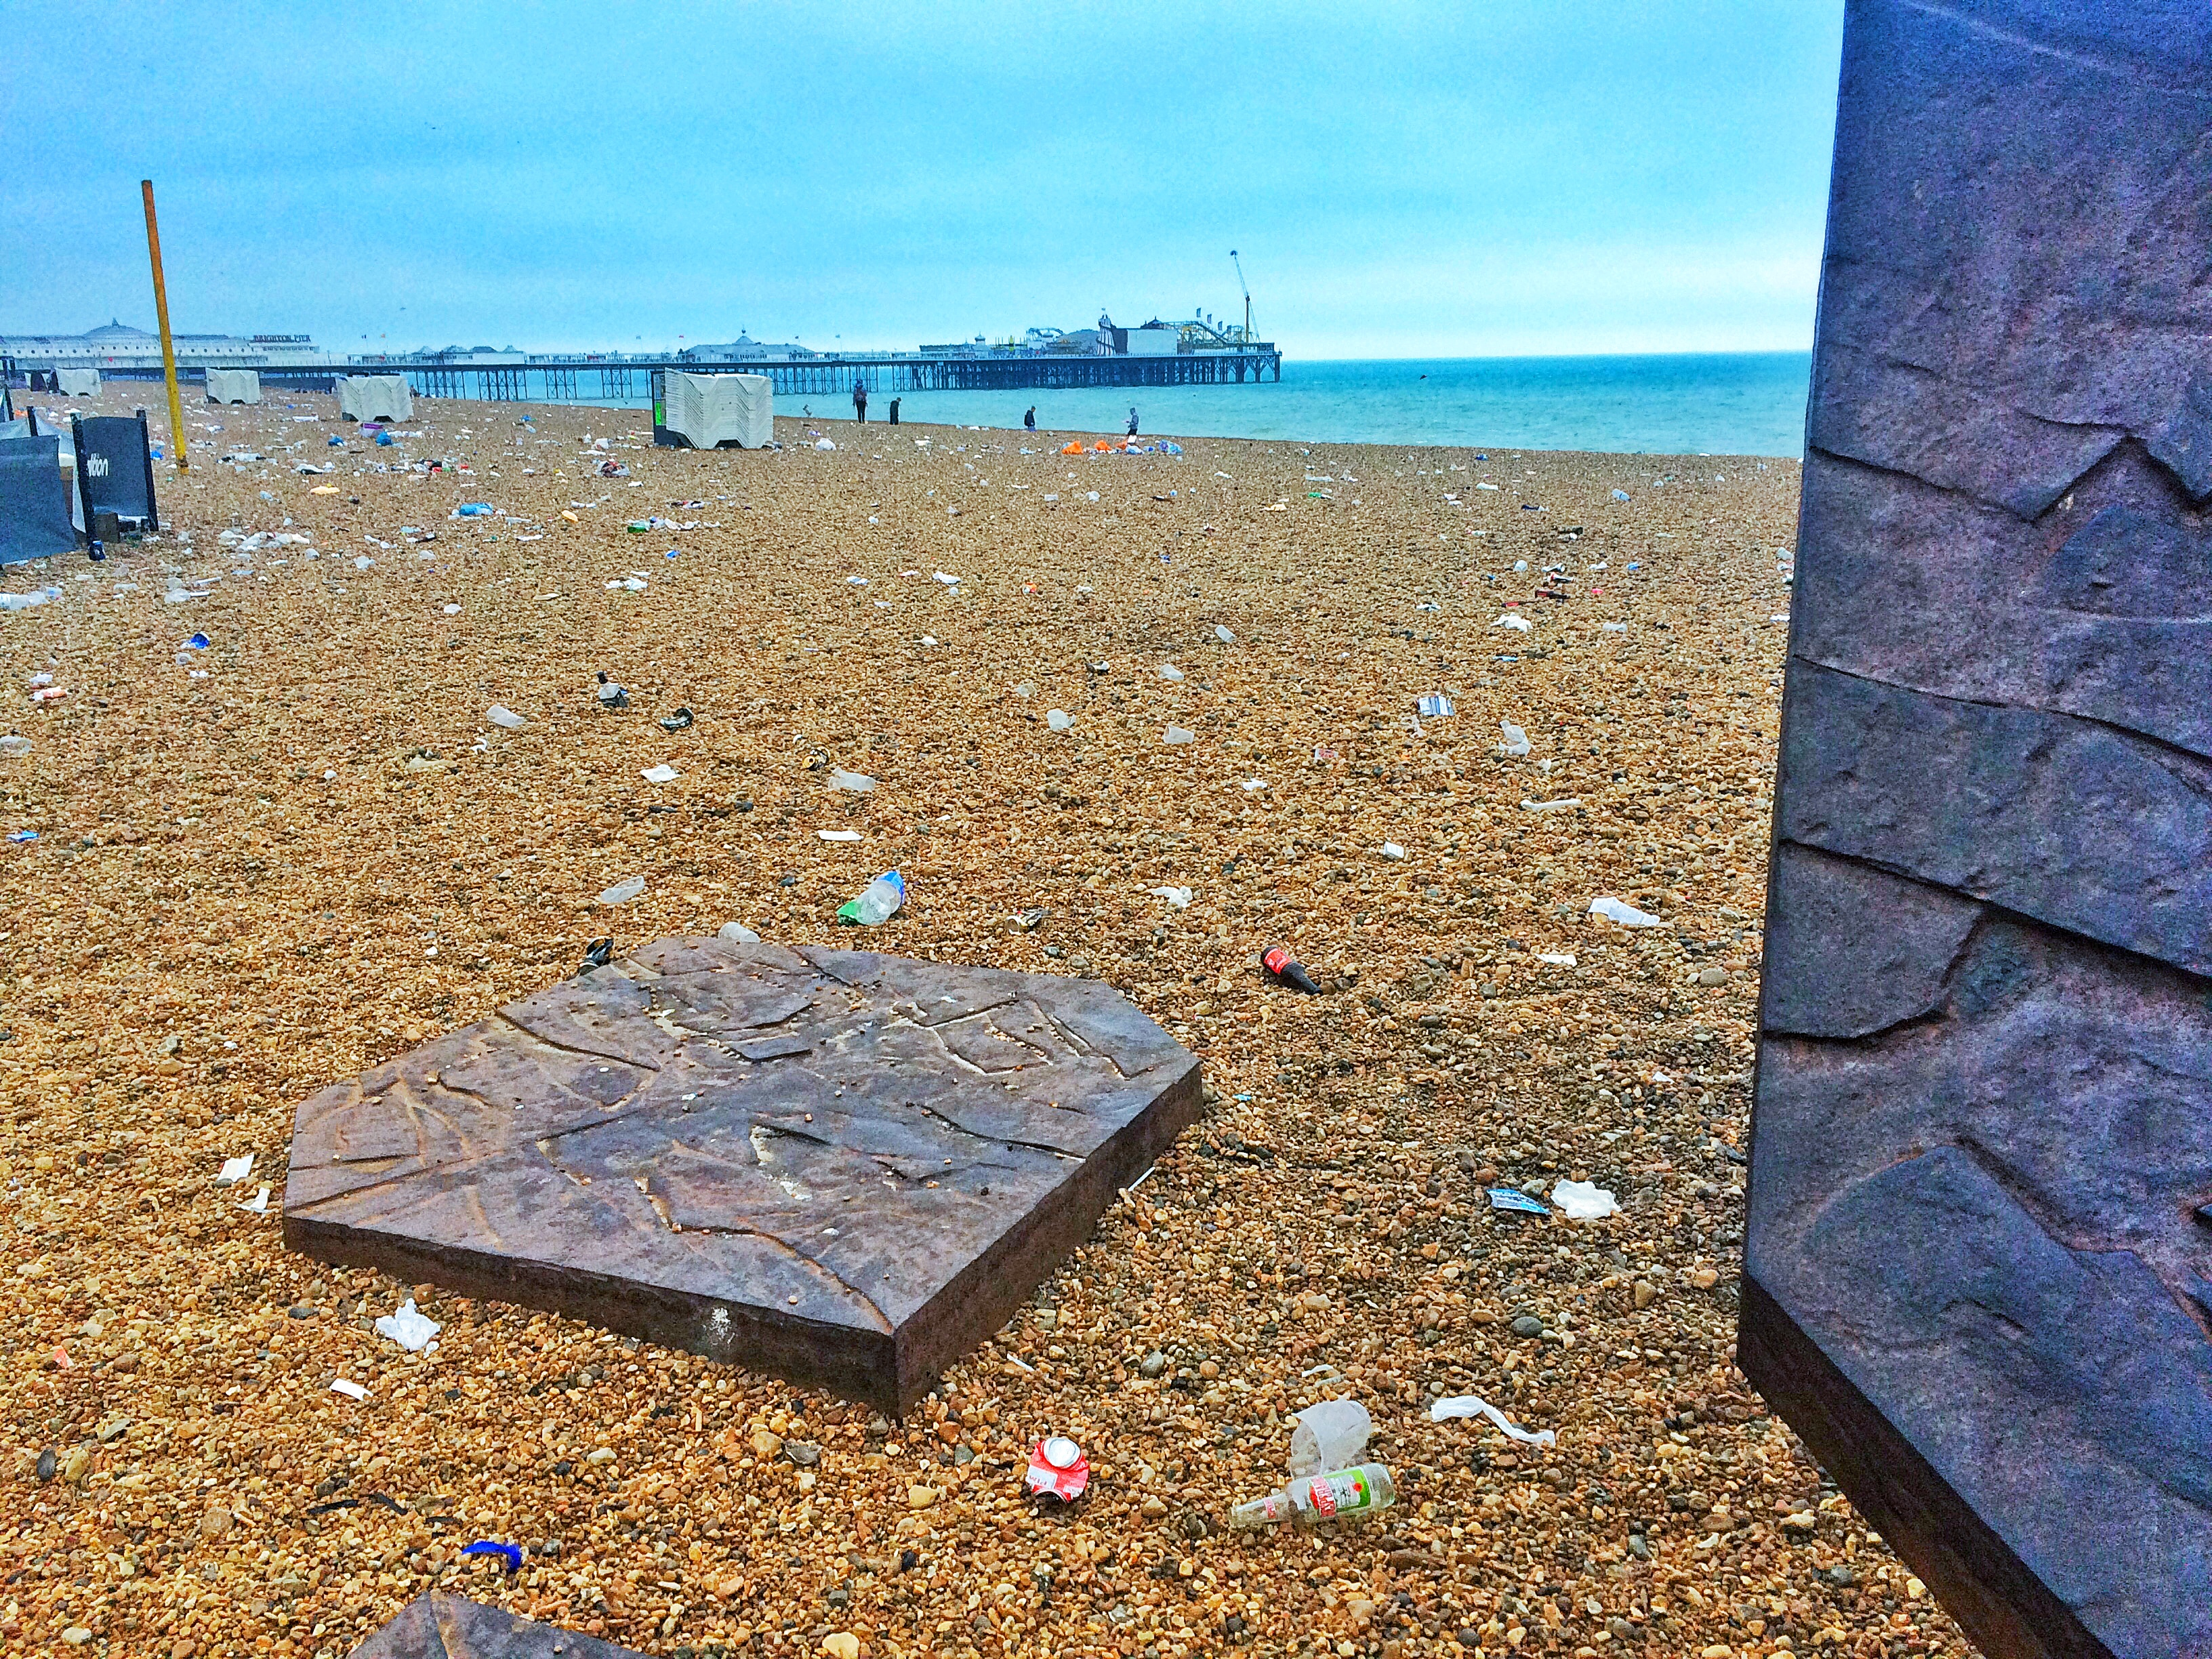 BRIGHTON PRIDE AFTERMATH 2016 - BEACH MESS WITH PIER